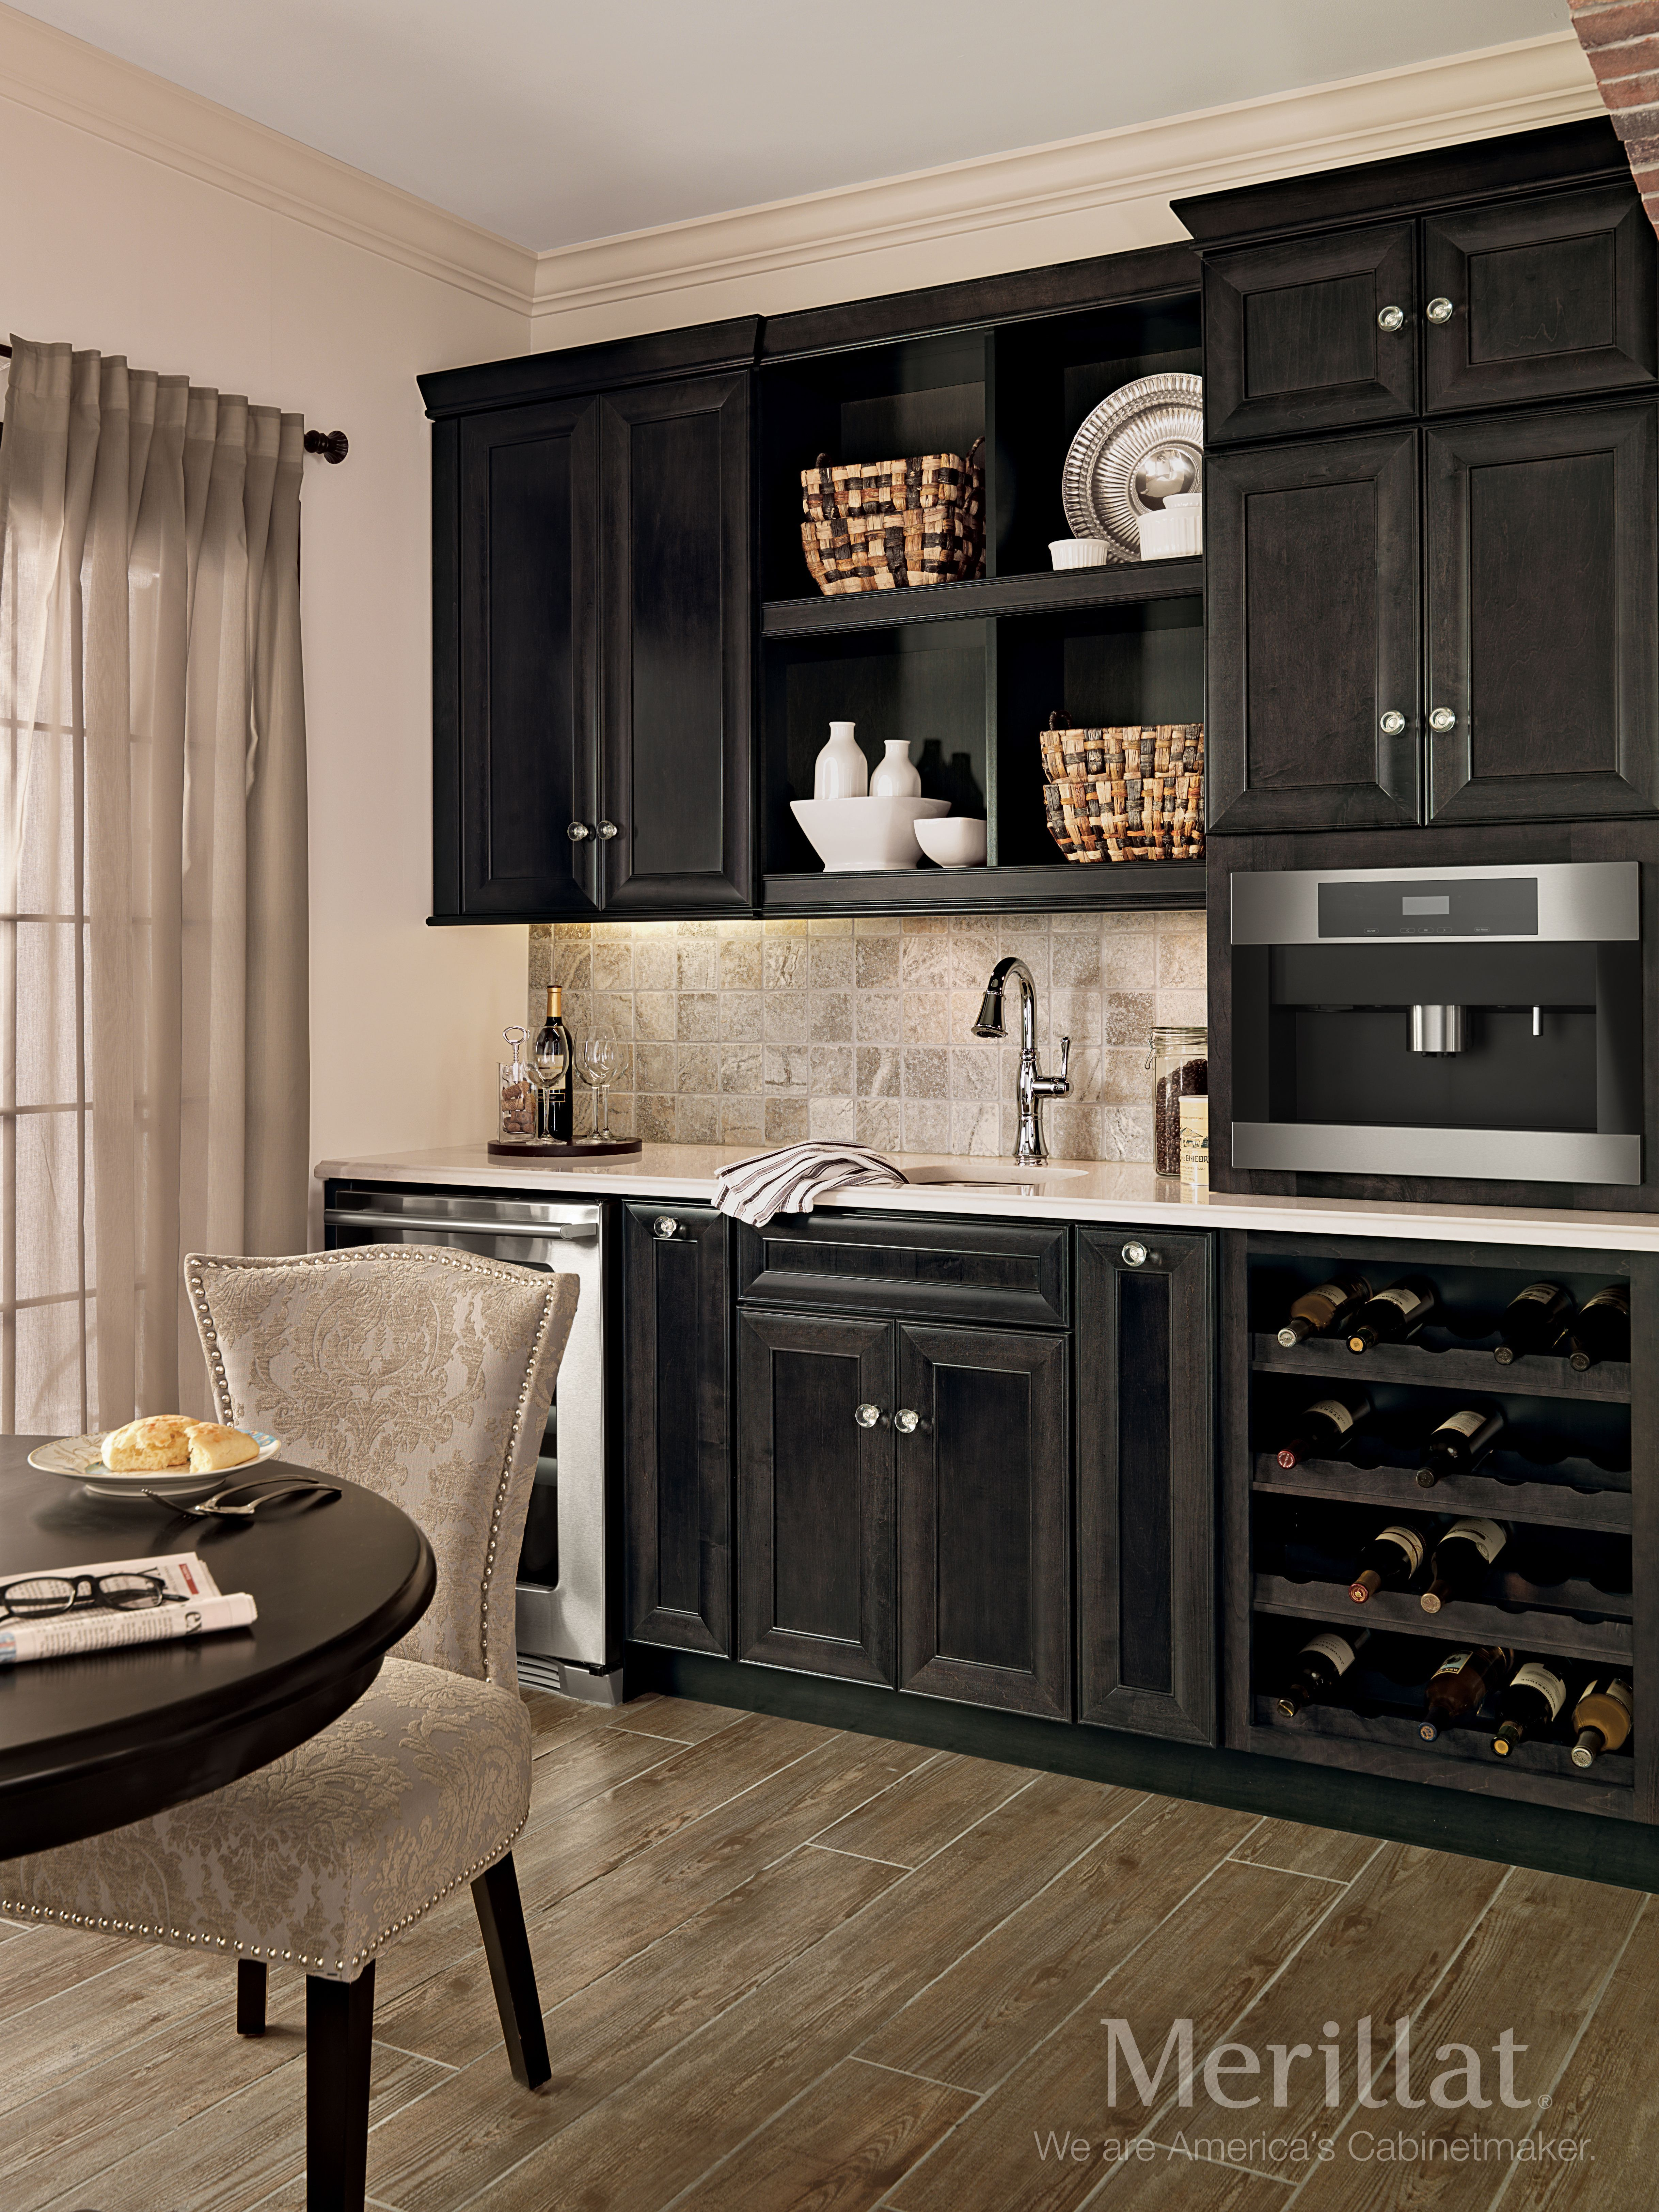 merillat classic bayville in maple dusk merillat cabinetry this coffee and wine - Merillat Classic Kitchen Cabinets